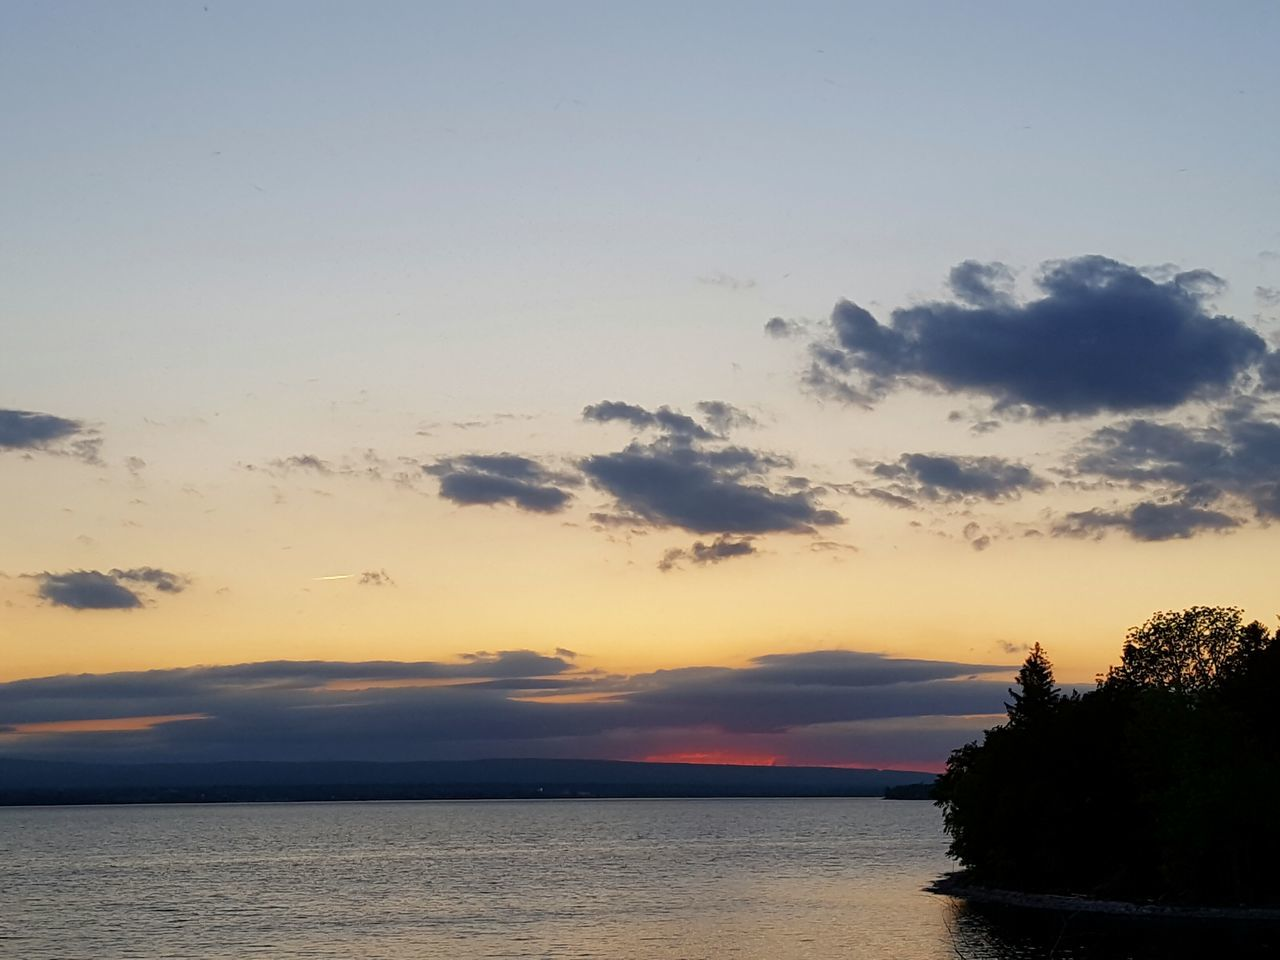 sunset, sky, scenics, tranquil scene, tranquility, beauty in nature, water, silhouette, no people, sea, nature, cloud - sky, tree, horizon over water, outdoors, day